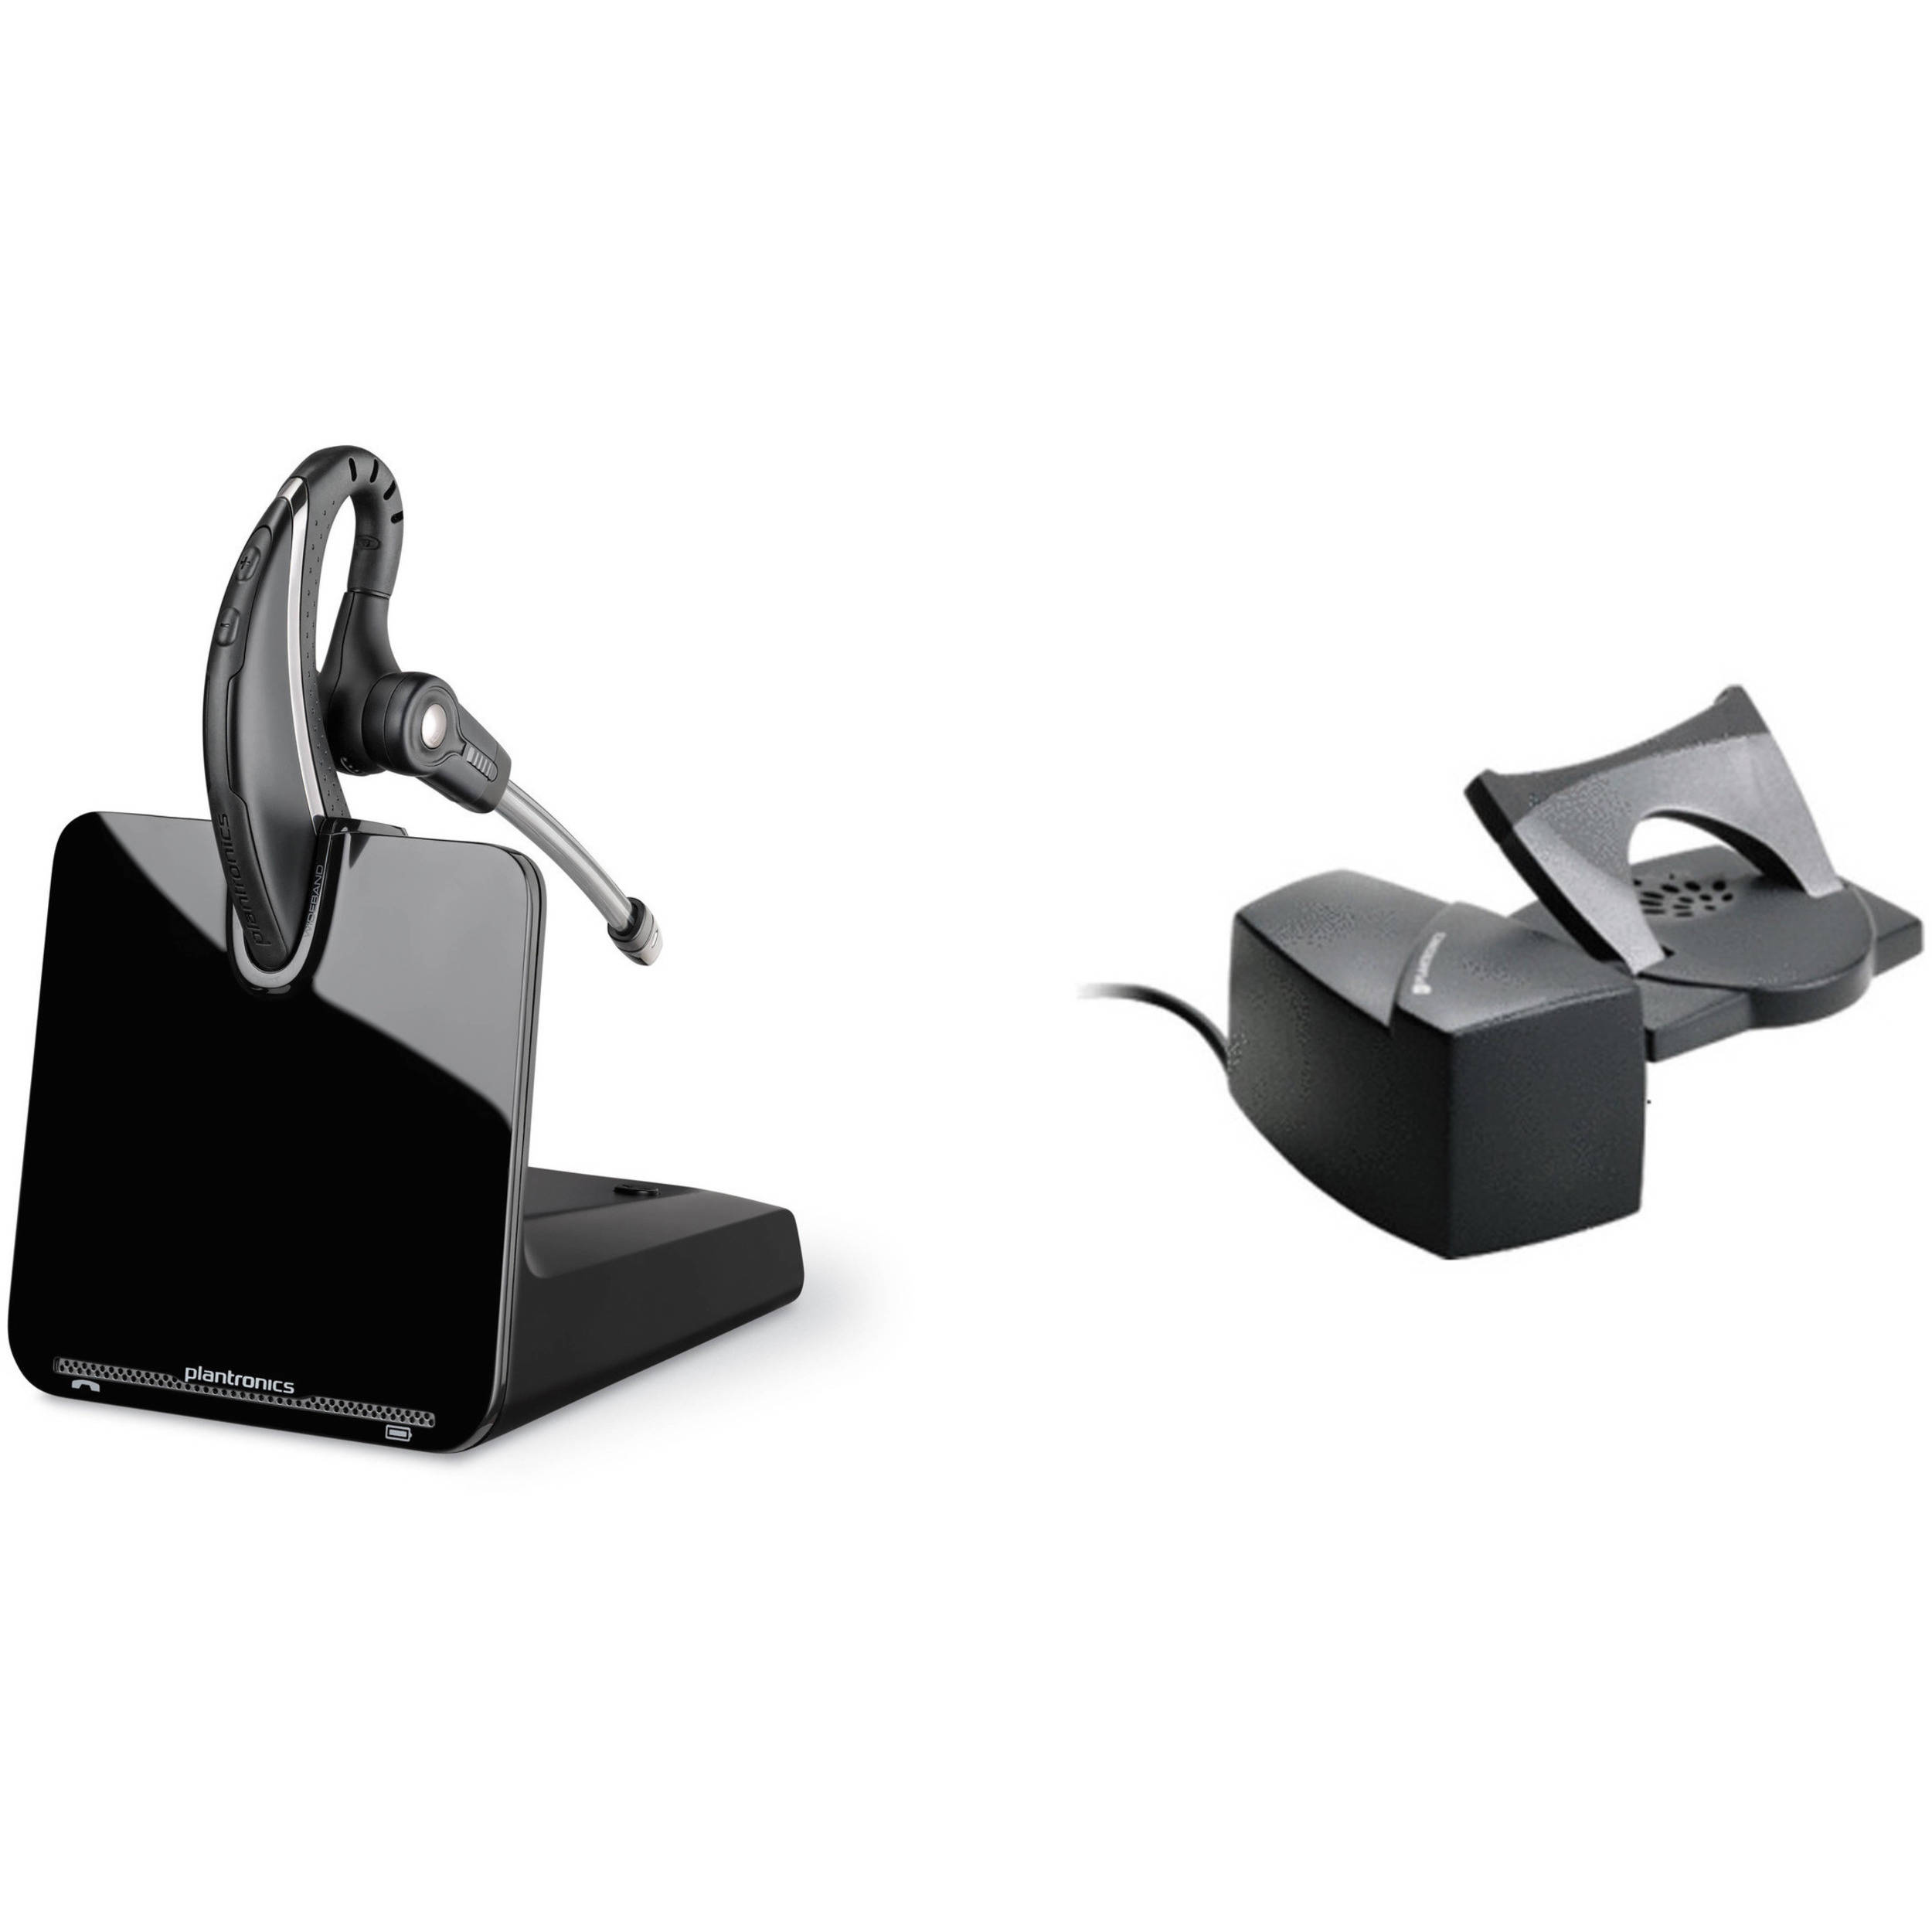 aea740817bcef3 Plantronics CS530 Over-the-Ear Wireless Headset Kit with HL10